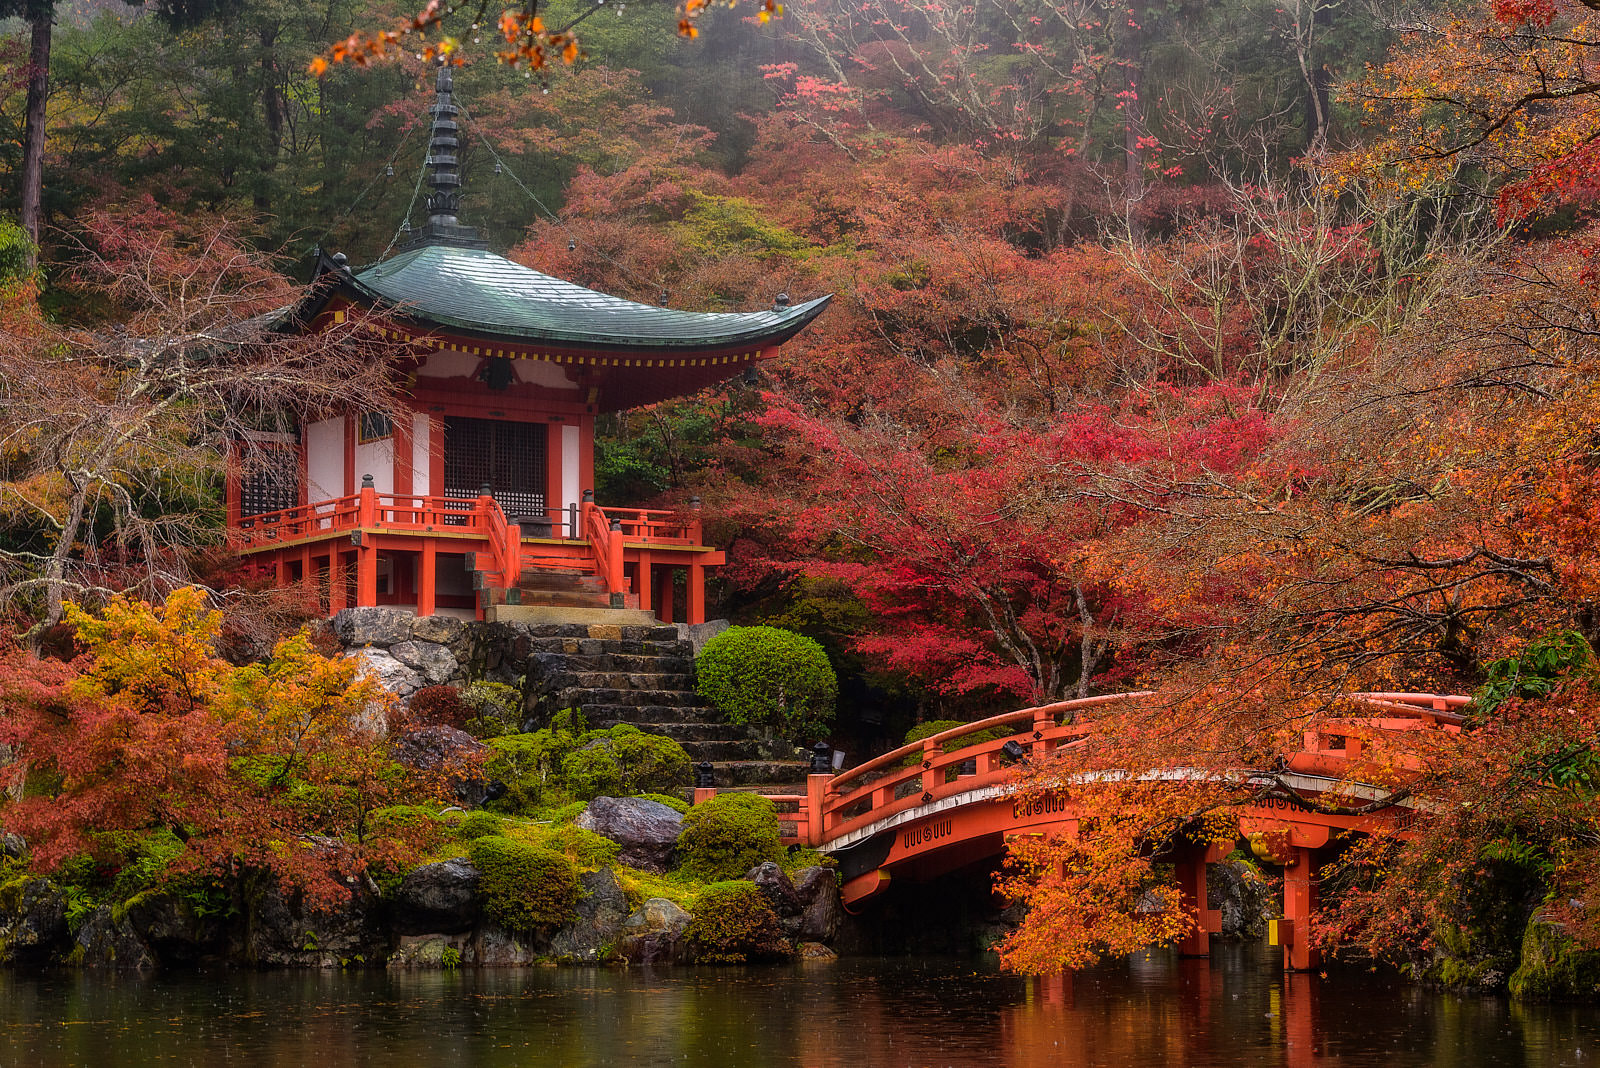 Fall colors at Daigo-ji temple in Kyoto, Japan reflecting on the water